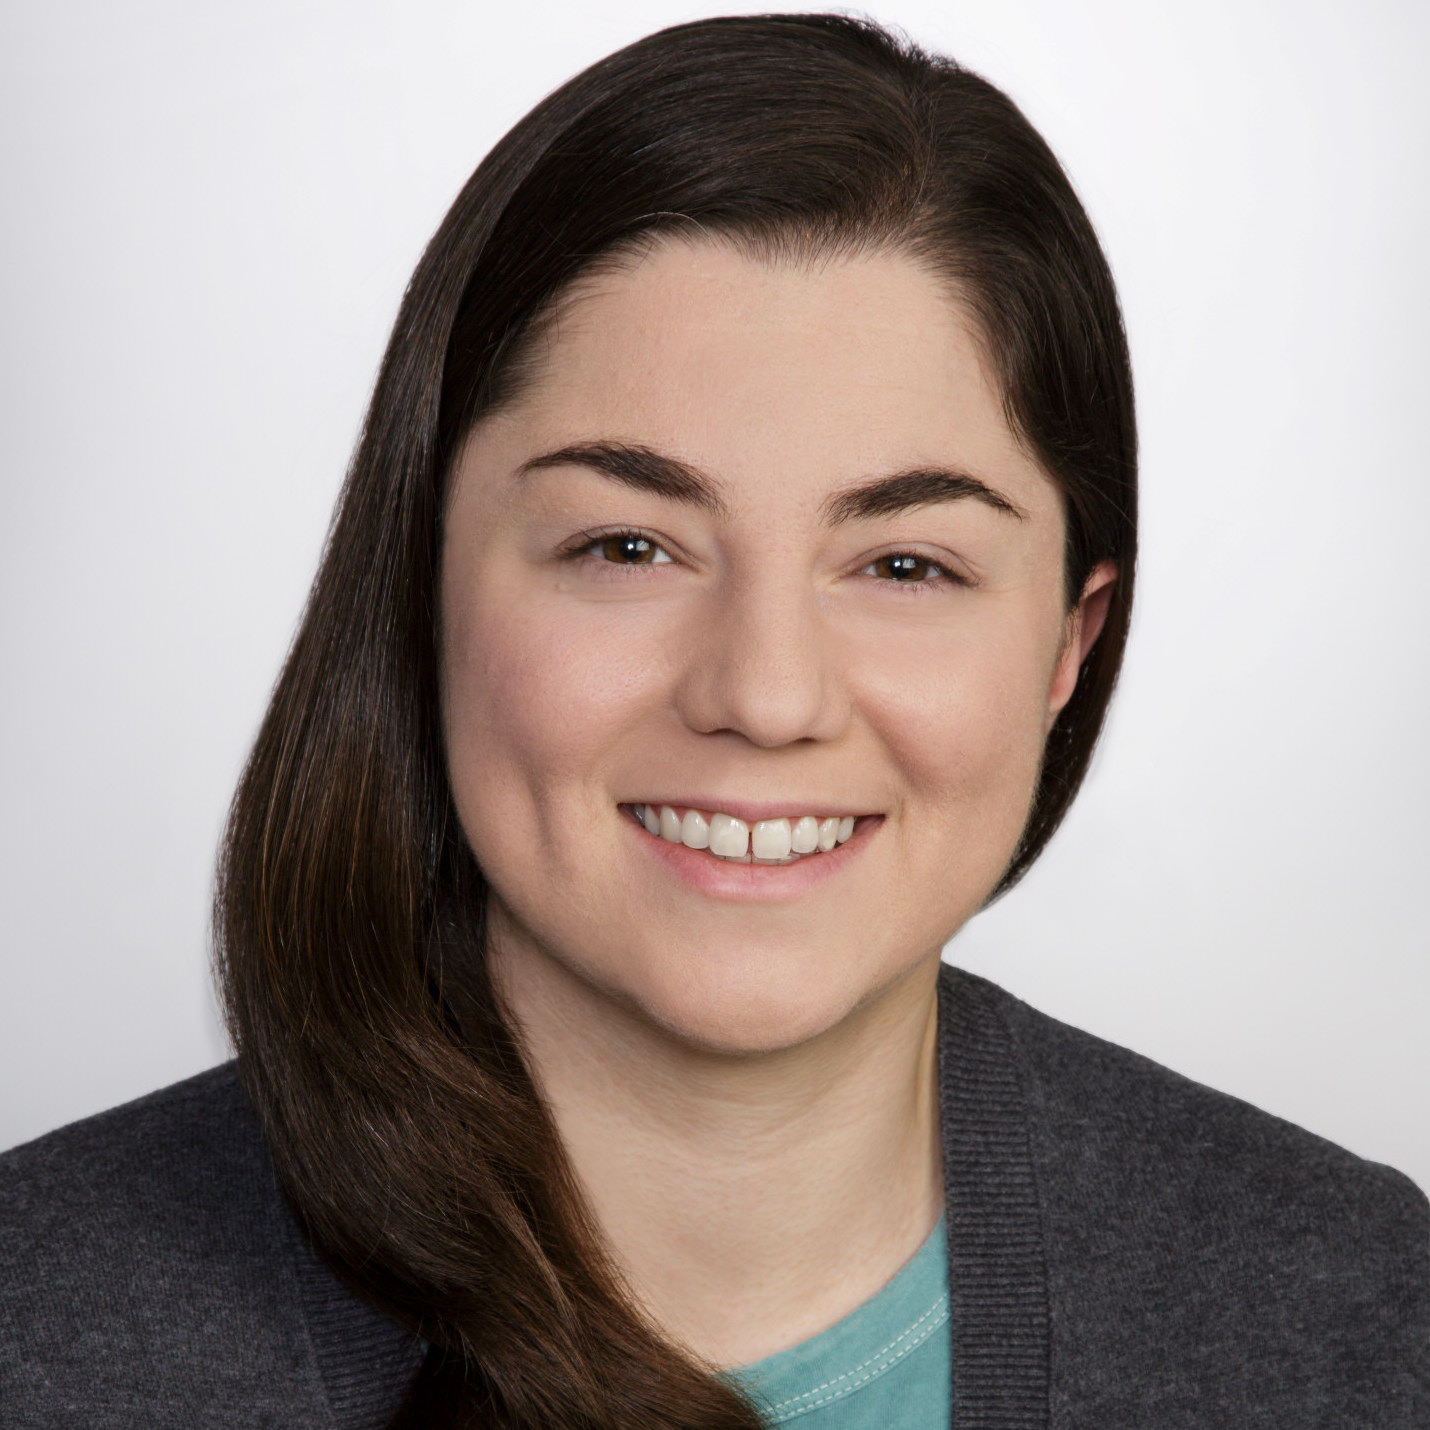 Melany Sponseller melanys@mit.edu  Melany is a PhD student in Electrical Engineering and a member of ONE Lab at MIT. Her current research focuses on the design, fabrication, and characterization of quantum dot solar cells. She received her BS and MS in electrical engineering from Stanford.